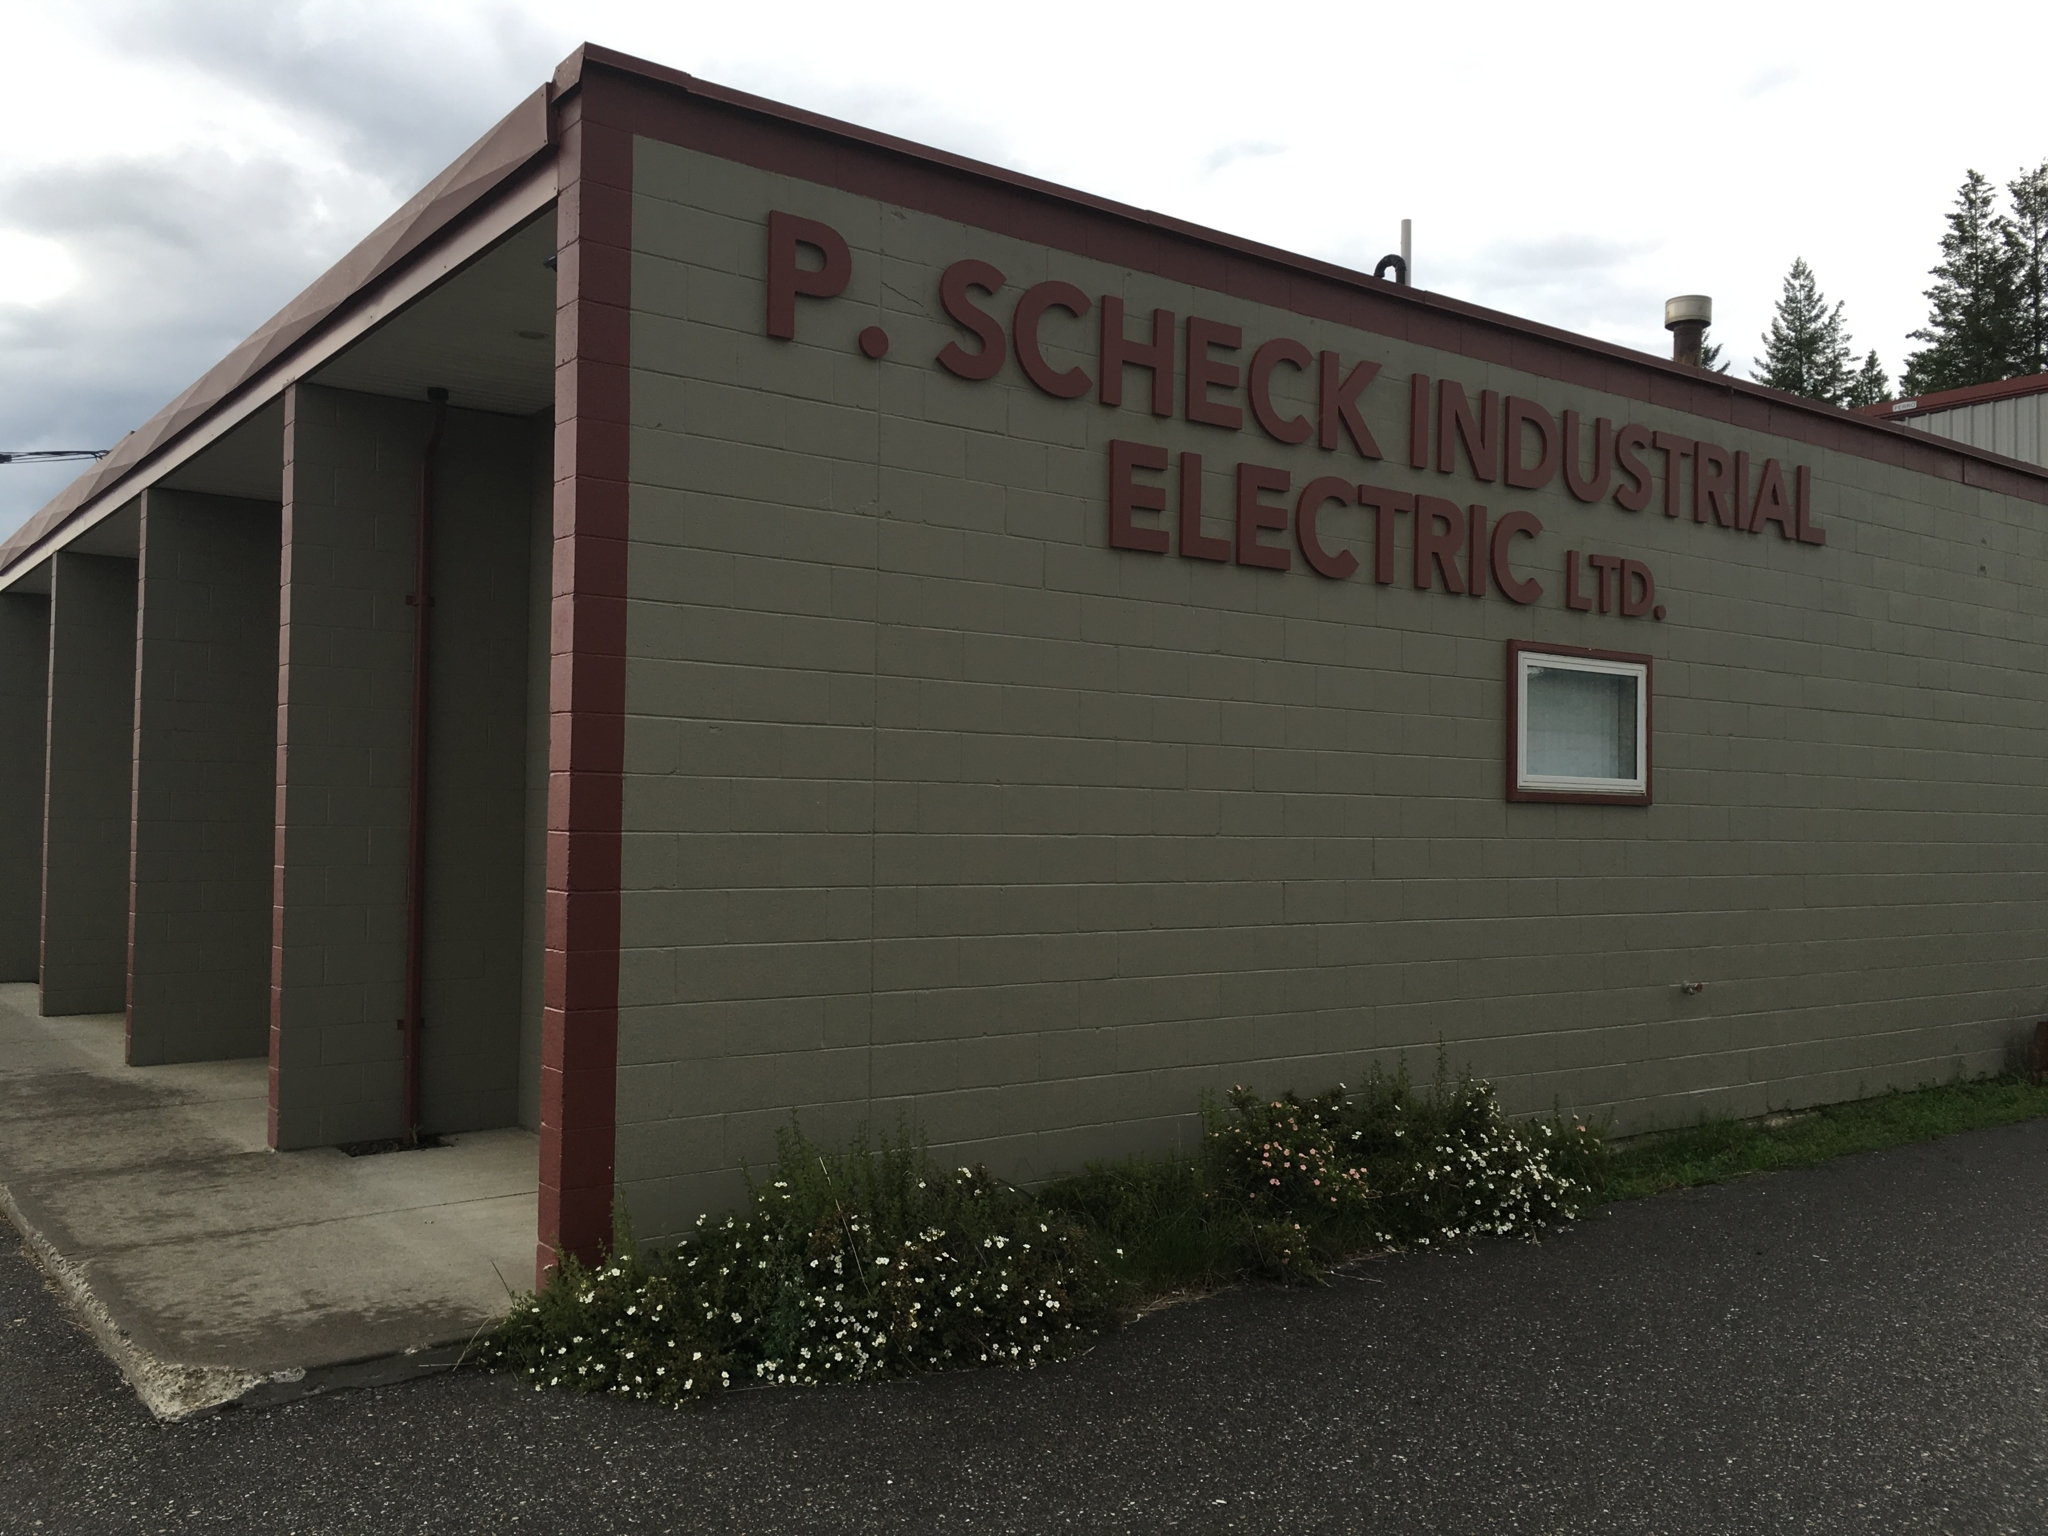 Scheck P Industrial Electric Ltd in Quesnel